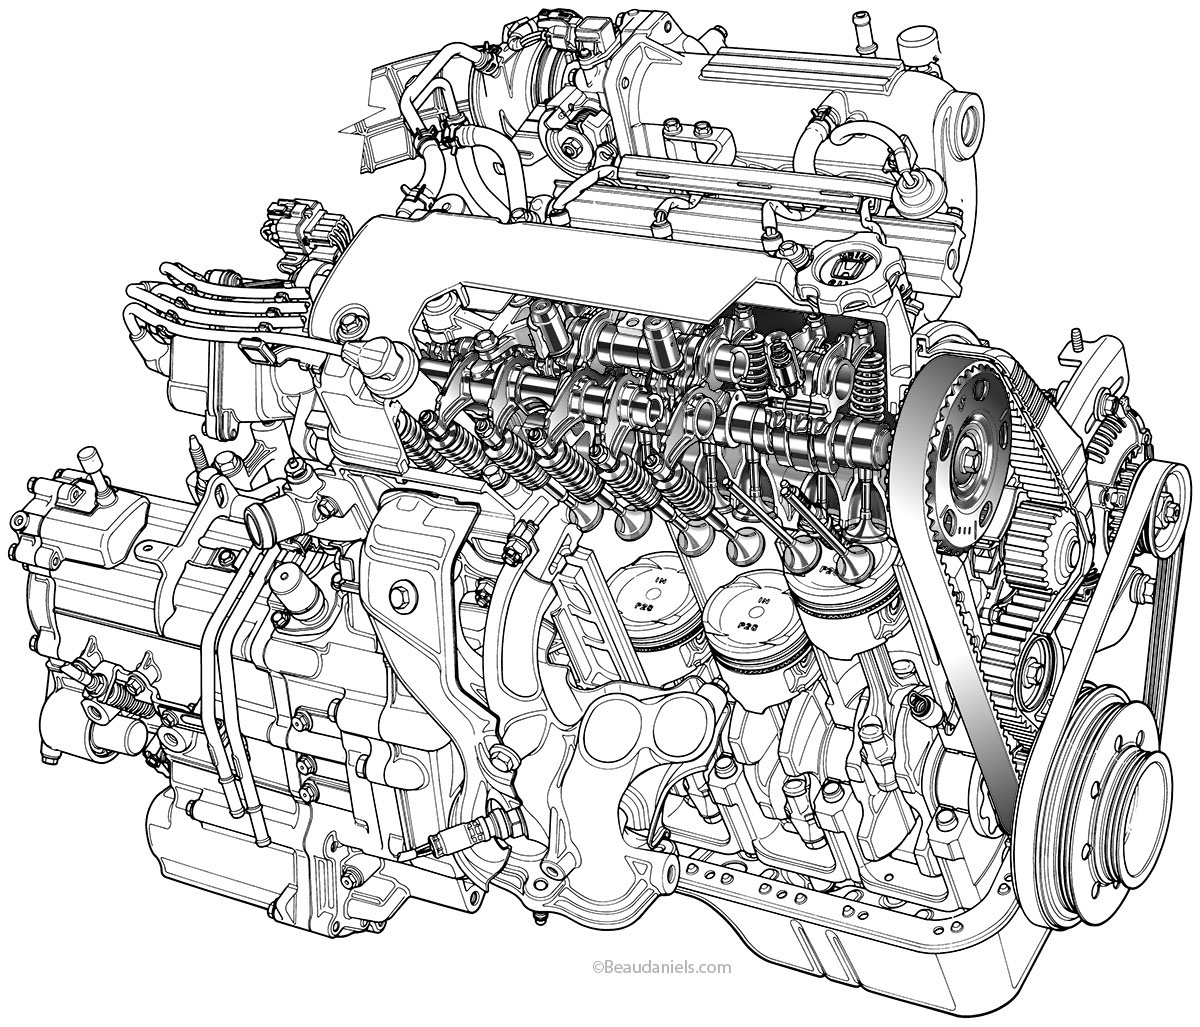 Engines Drawing At Getdrawings